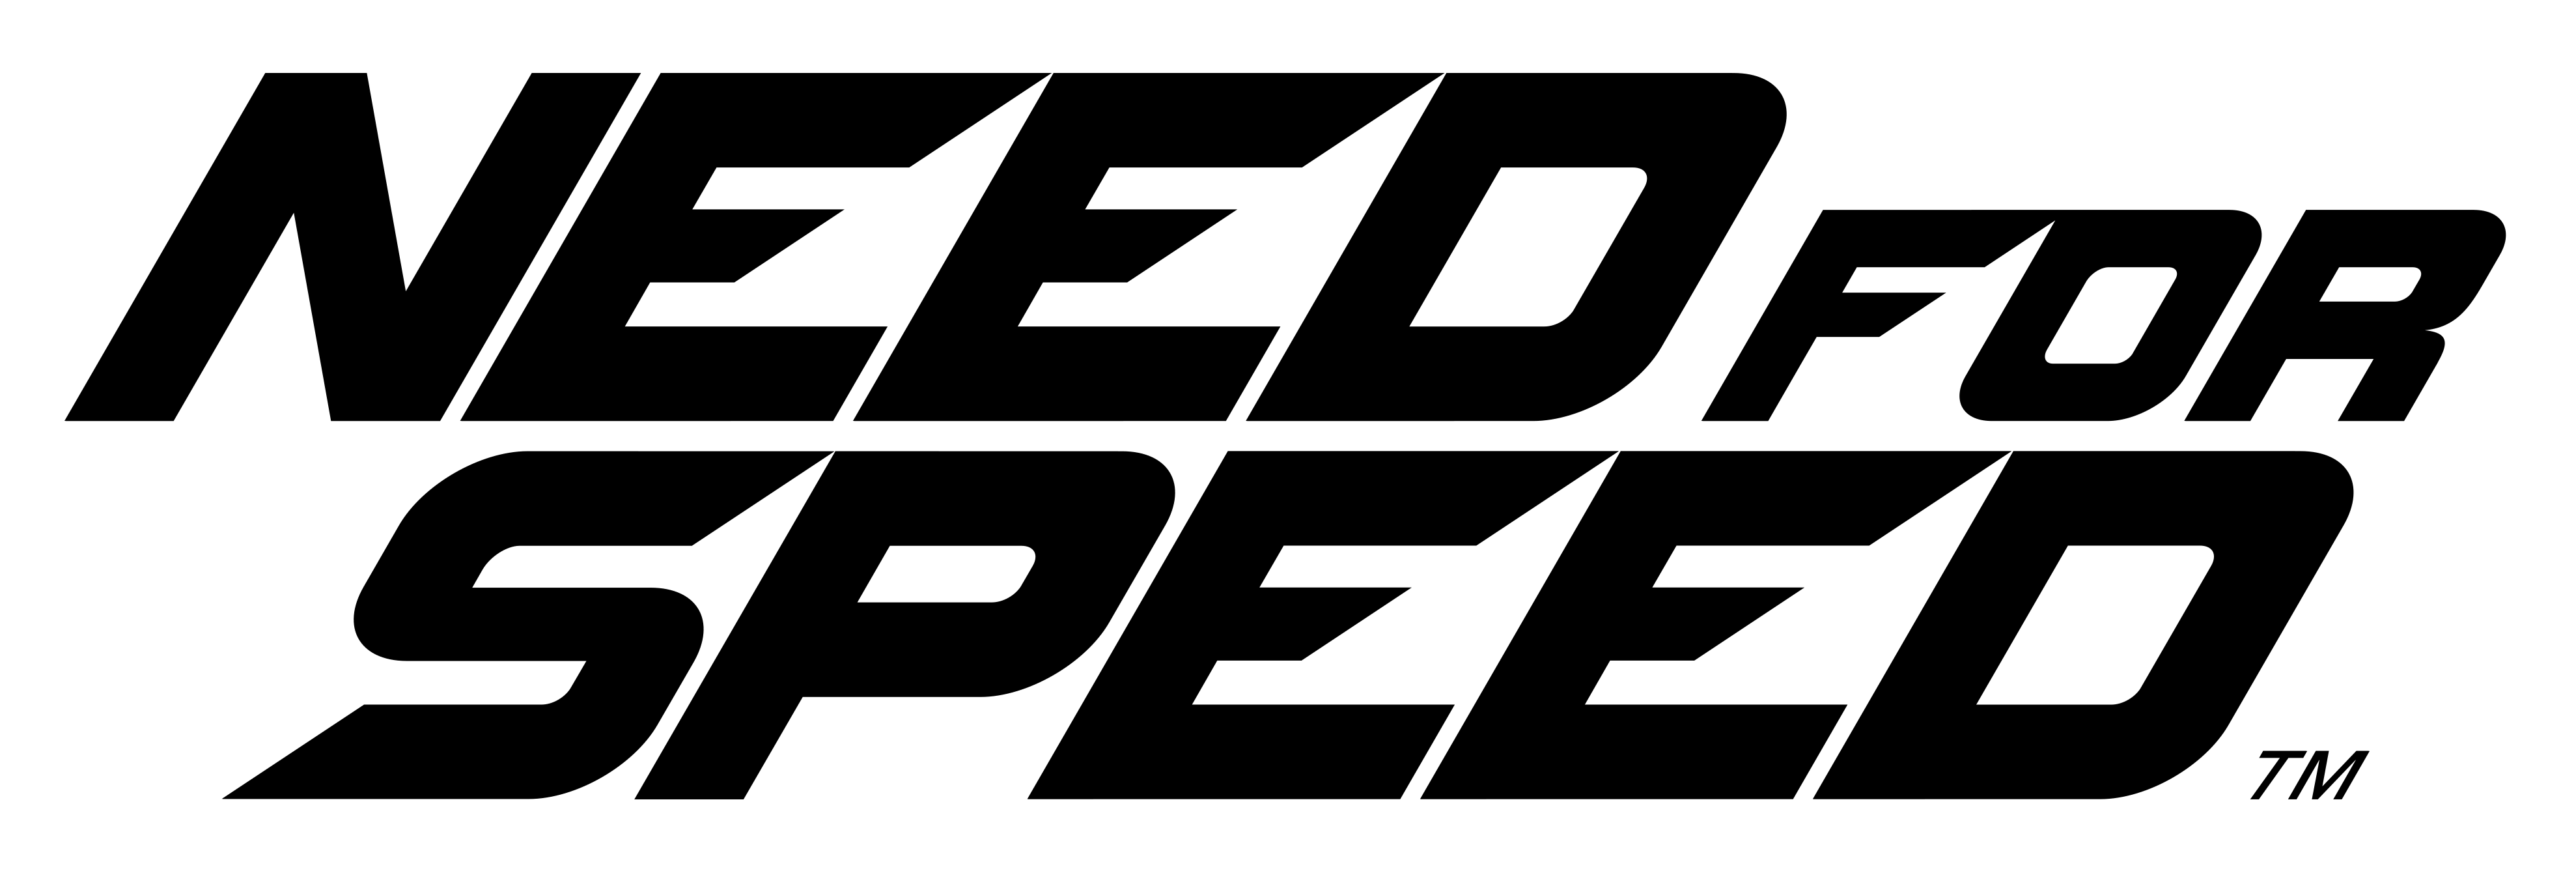 Need for Speed Logo png